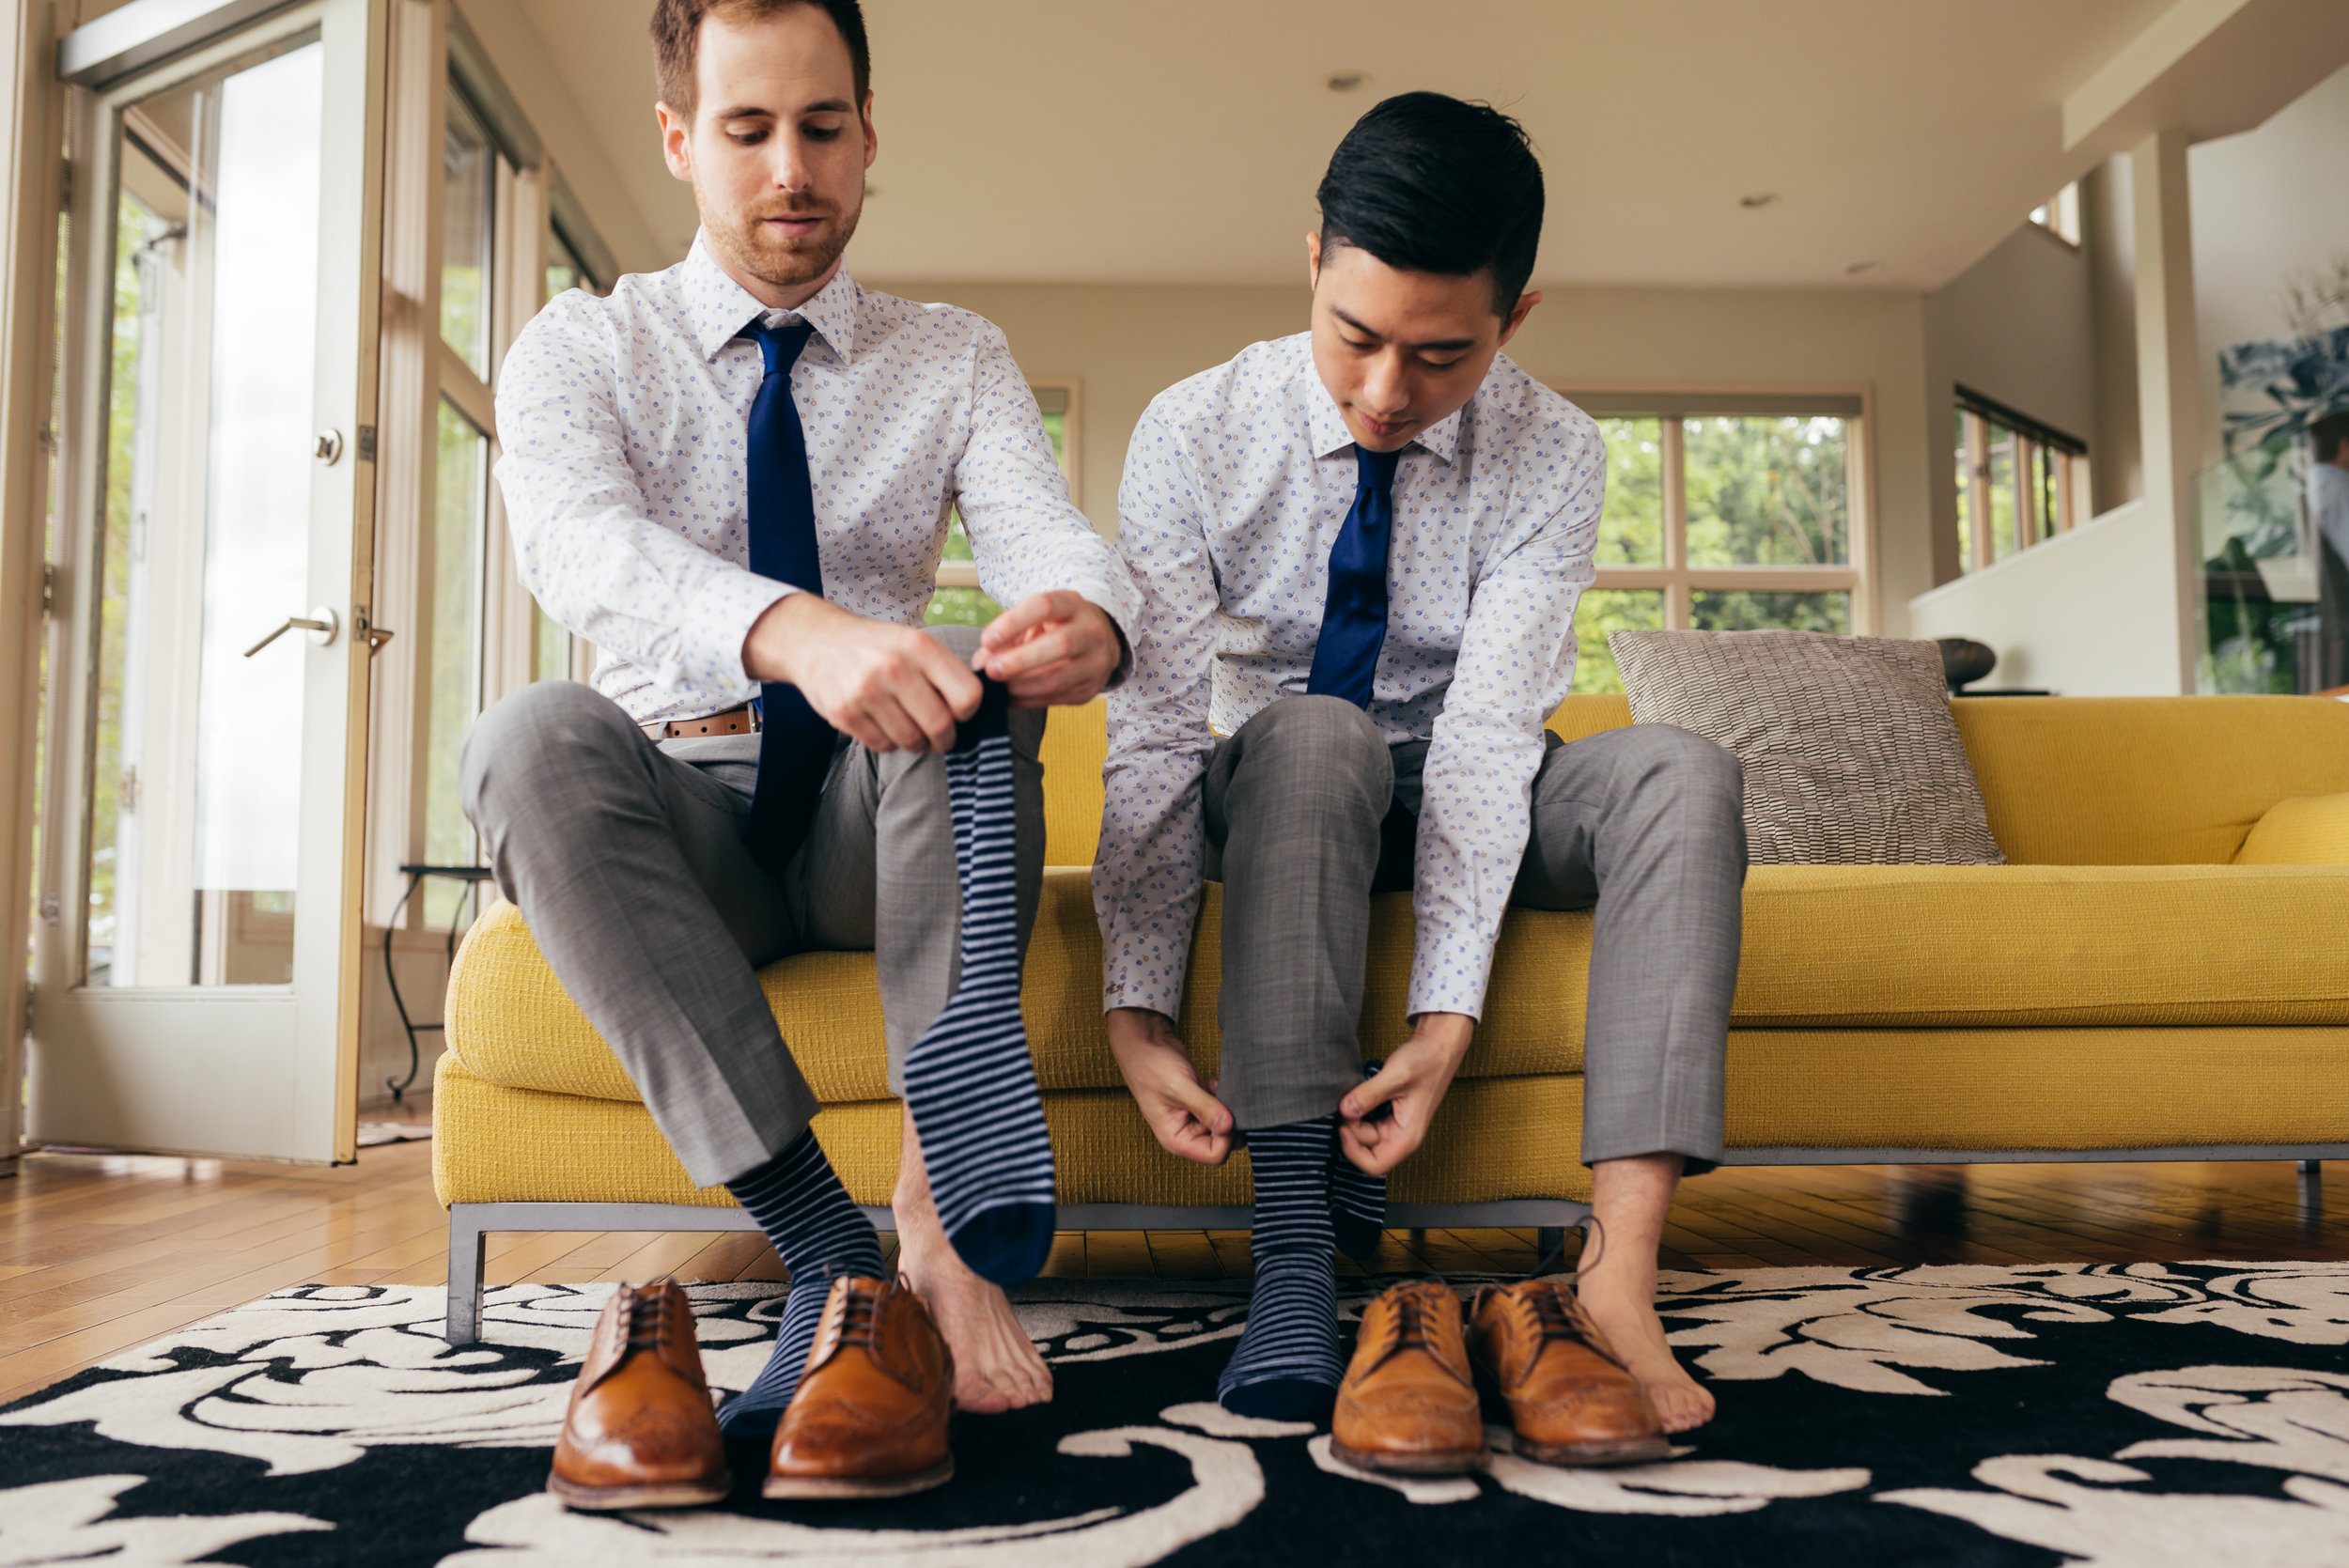 Chad and Eddie getting their socks on together. I loved the striped pattern in the socks.